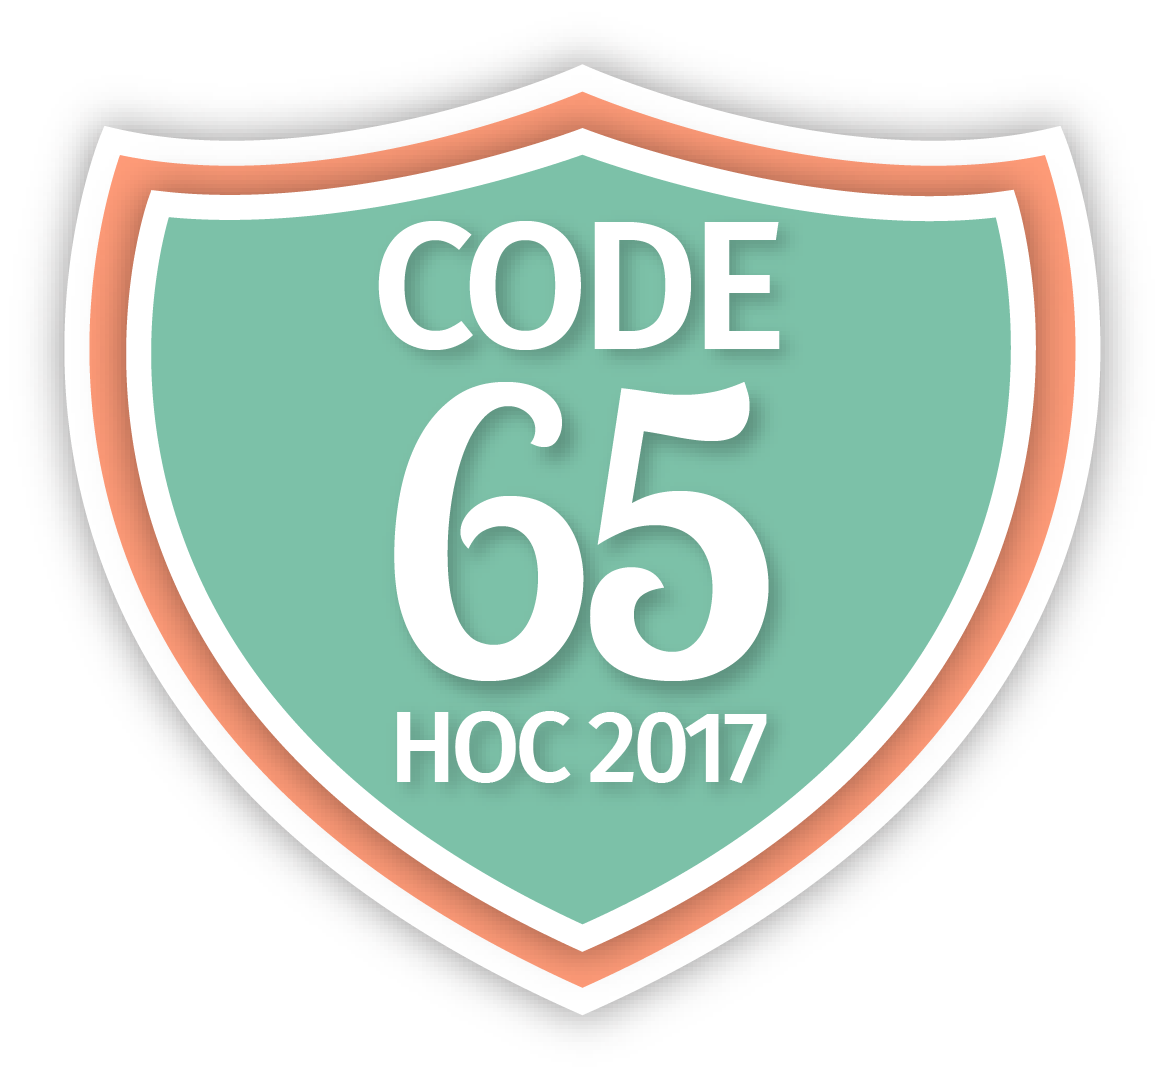 CCOL Digital Bade Library - collection of badges to represent your